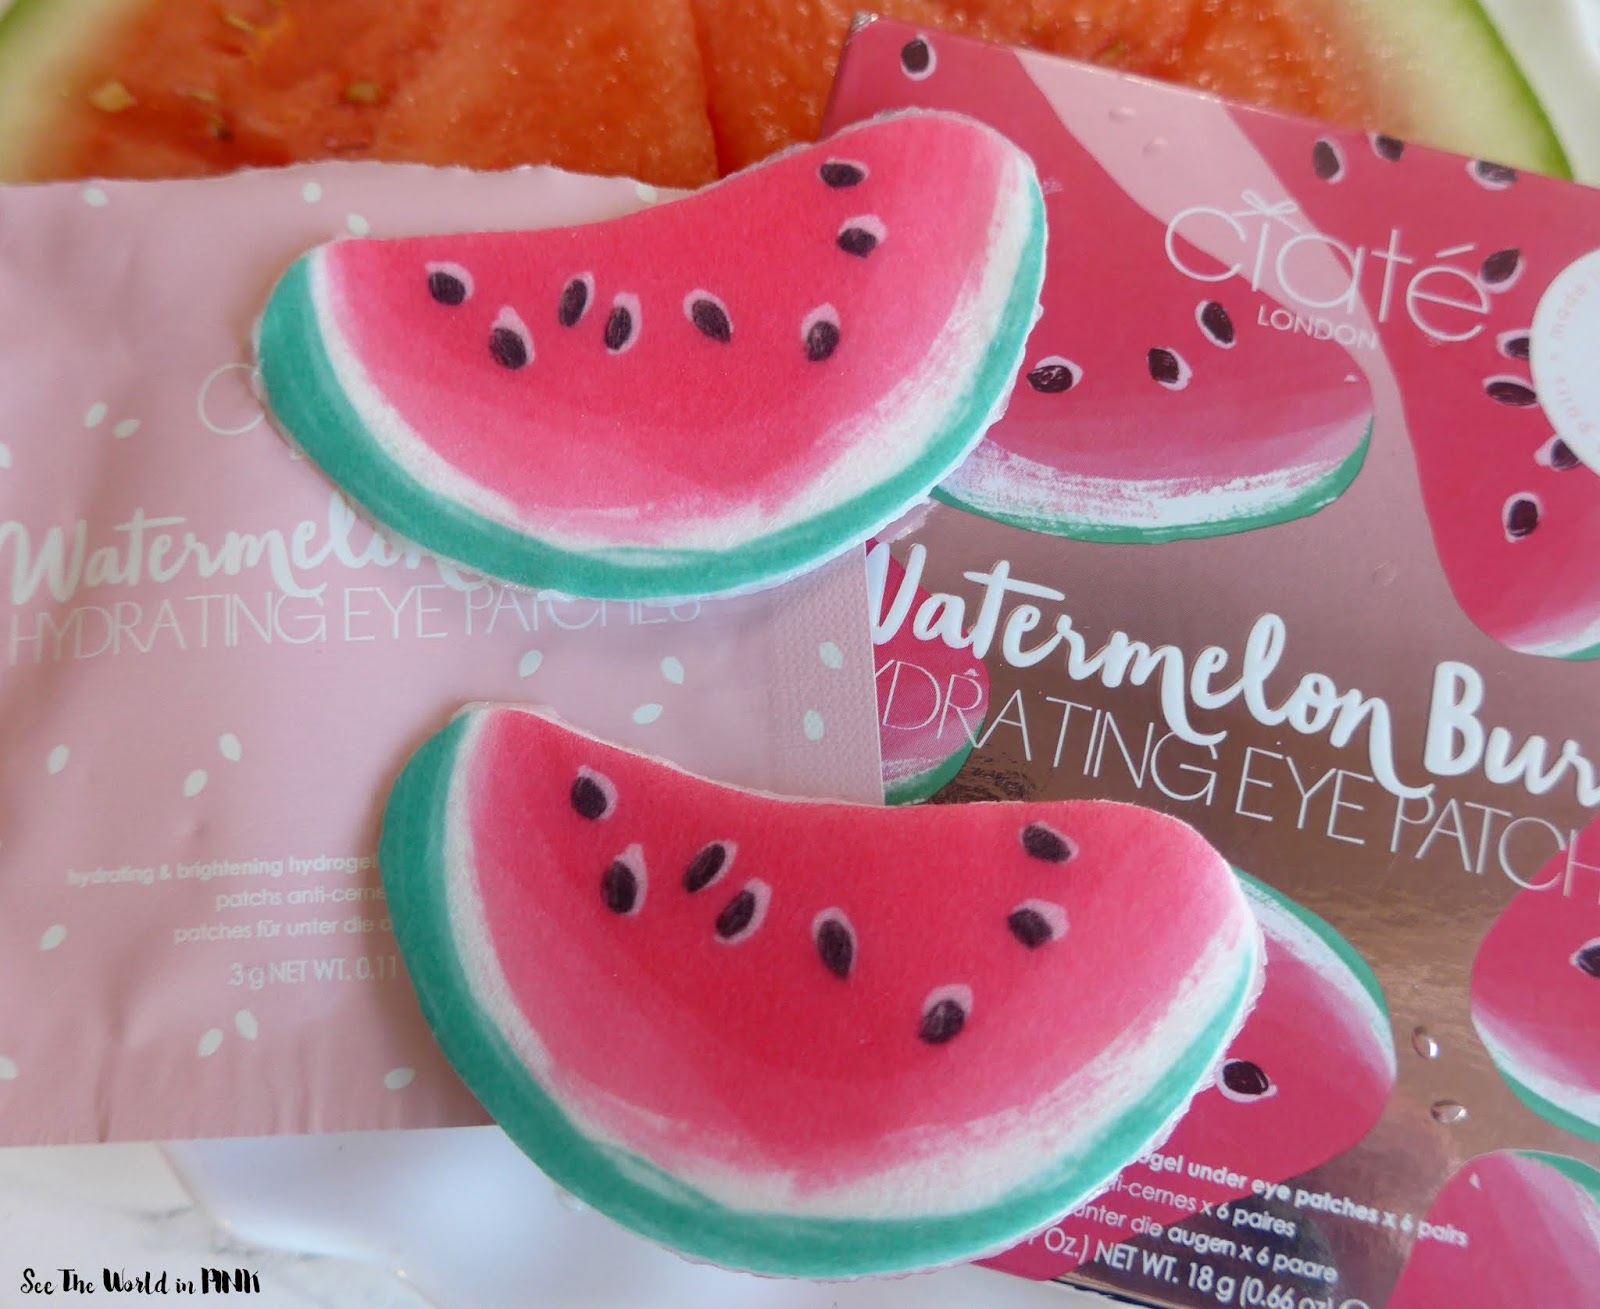 Skincare Sunday - Ciate London Watermelon Burst Hydrating Eye Patches